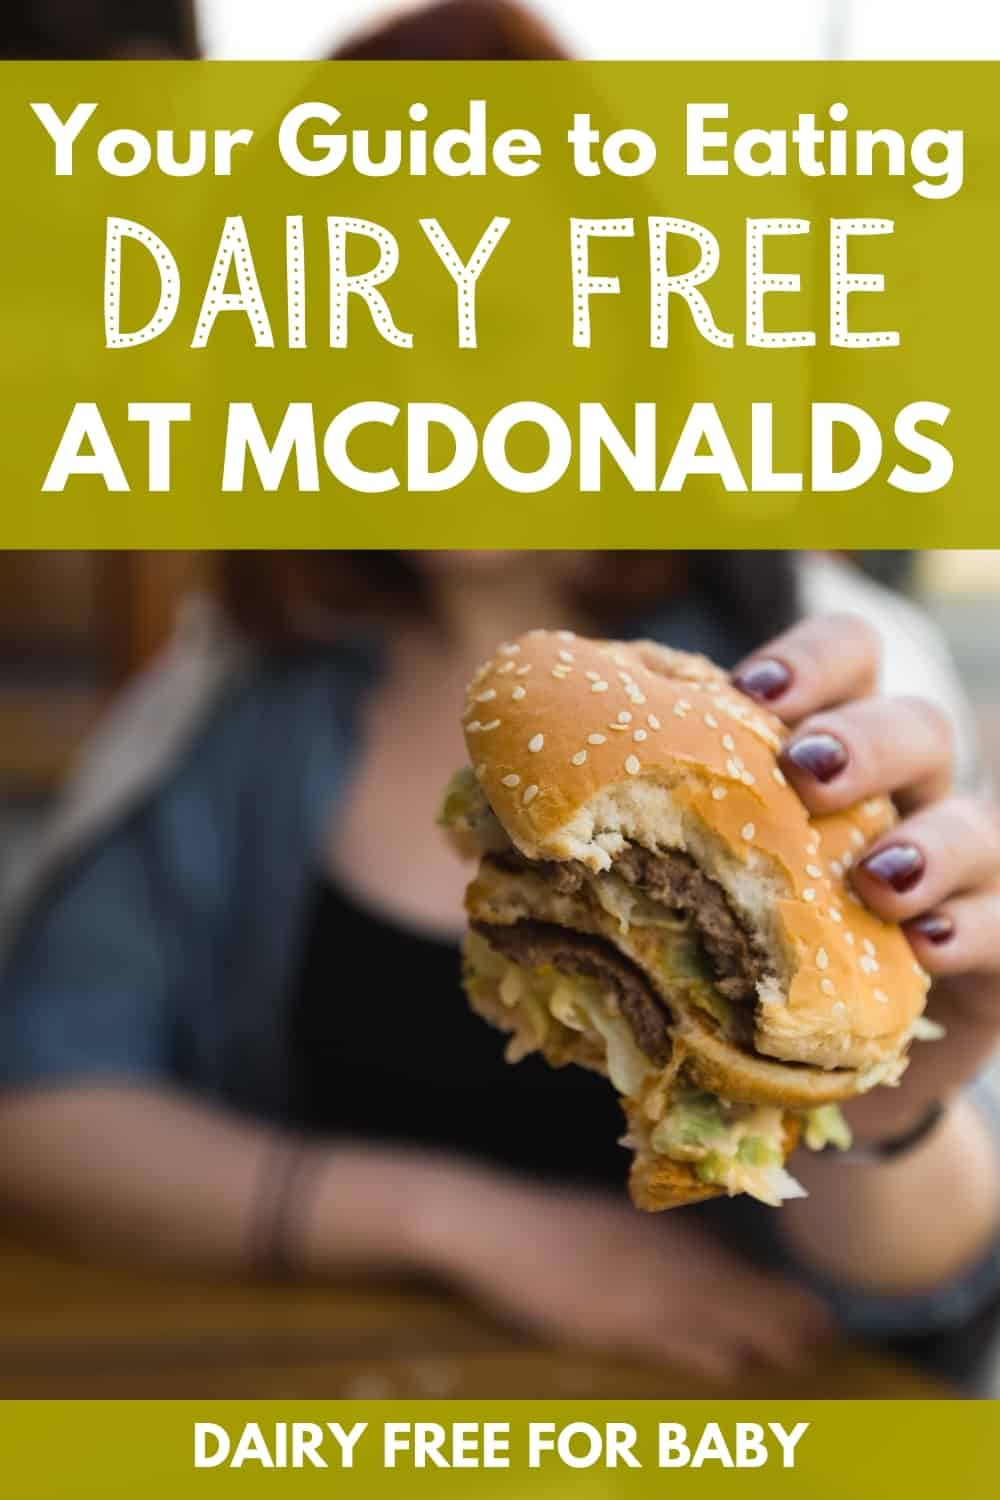 a woman holding a double hamburger with a text overlay that says your guide to eating dairy free at mcdonalds